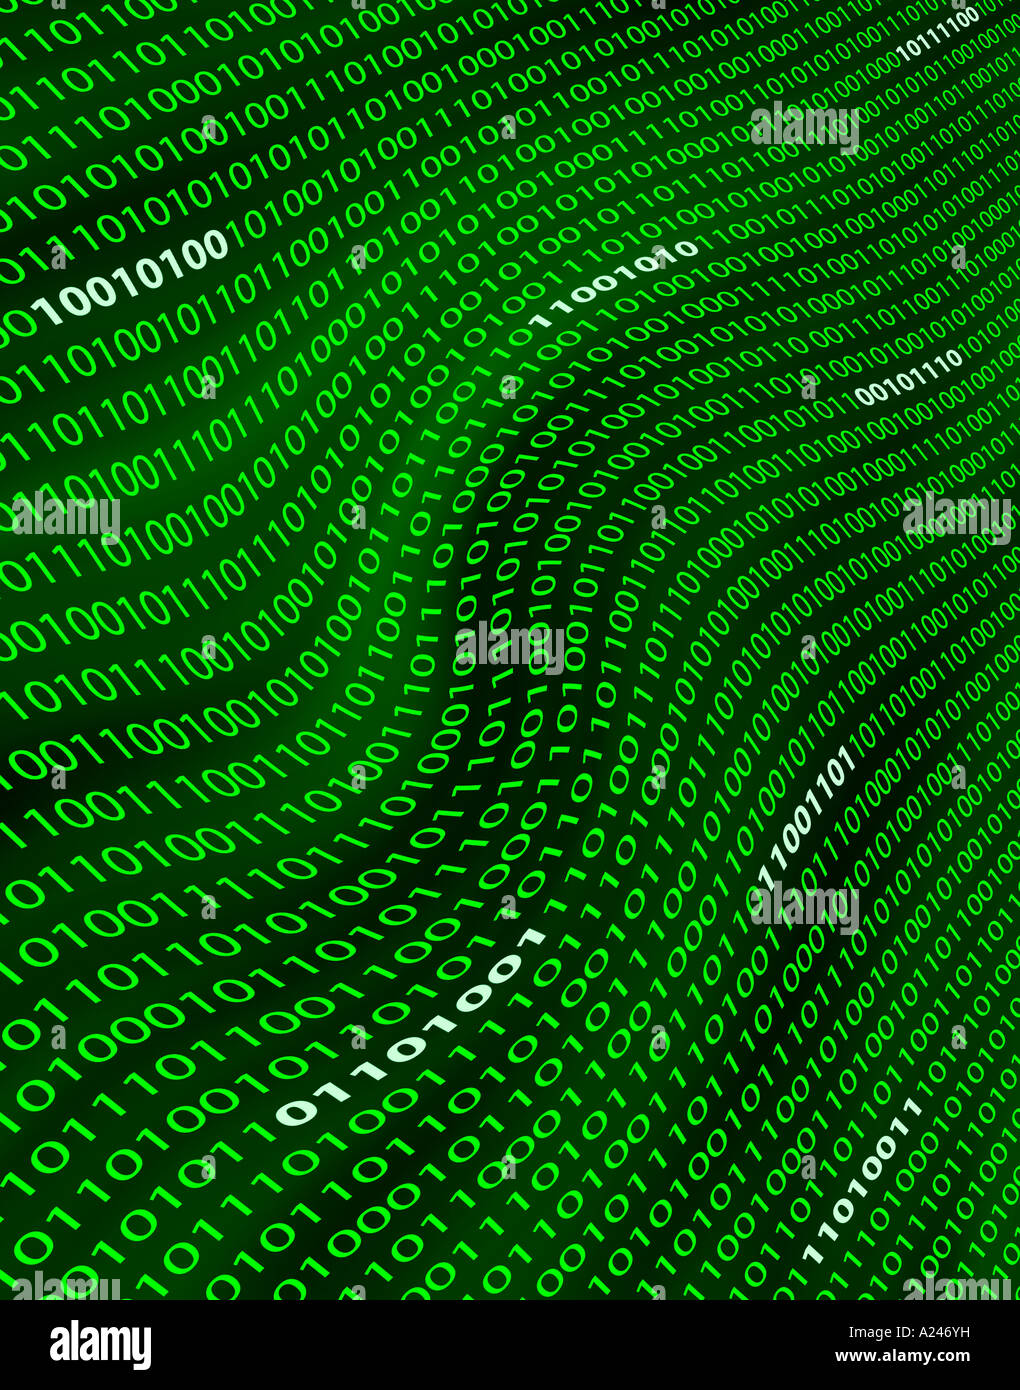 A distorted digital field of green binary numbers or code - Stock Image